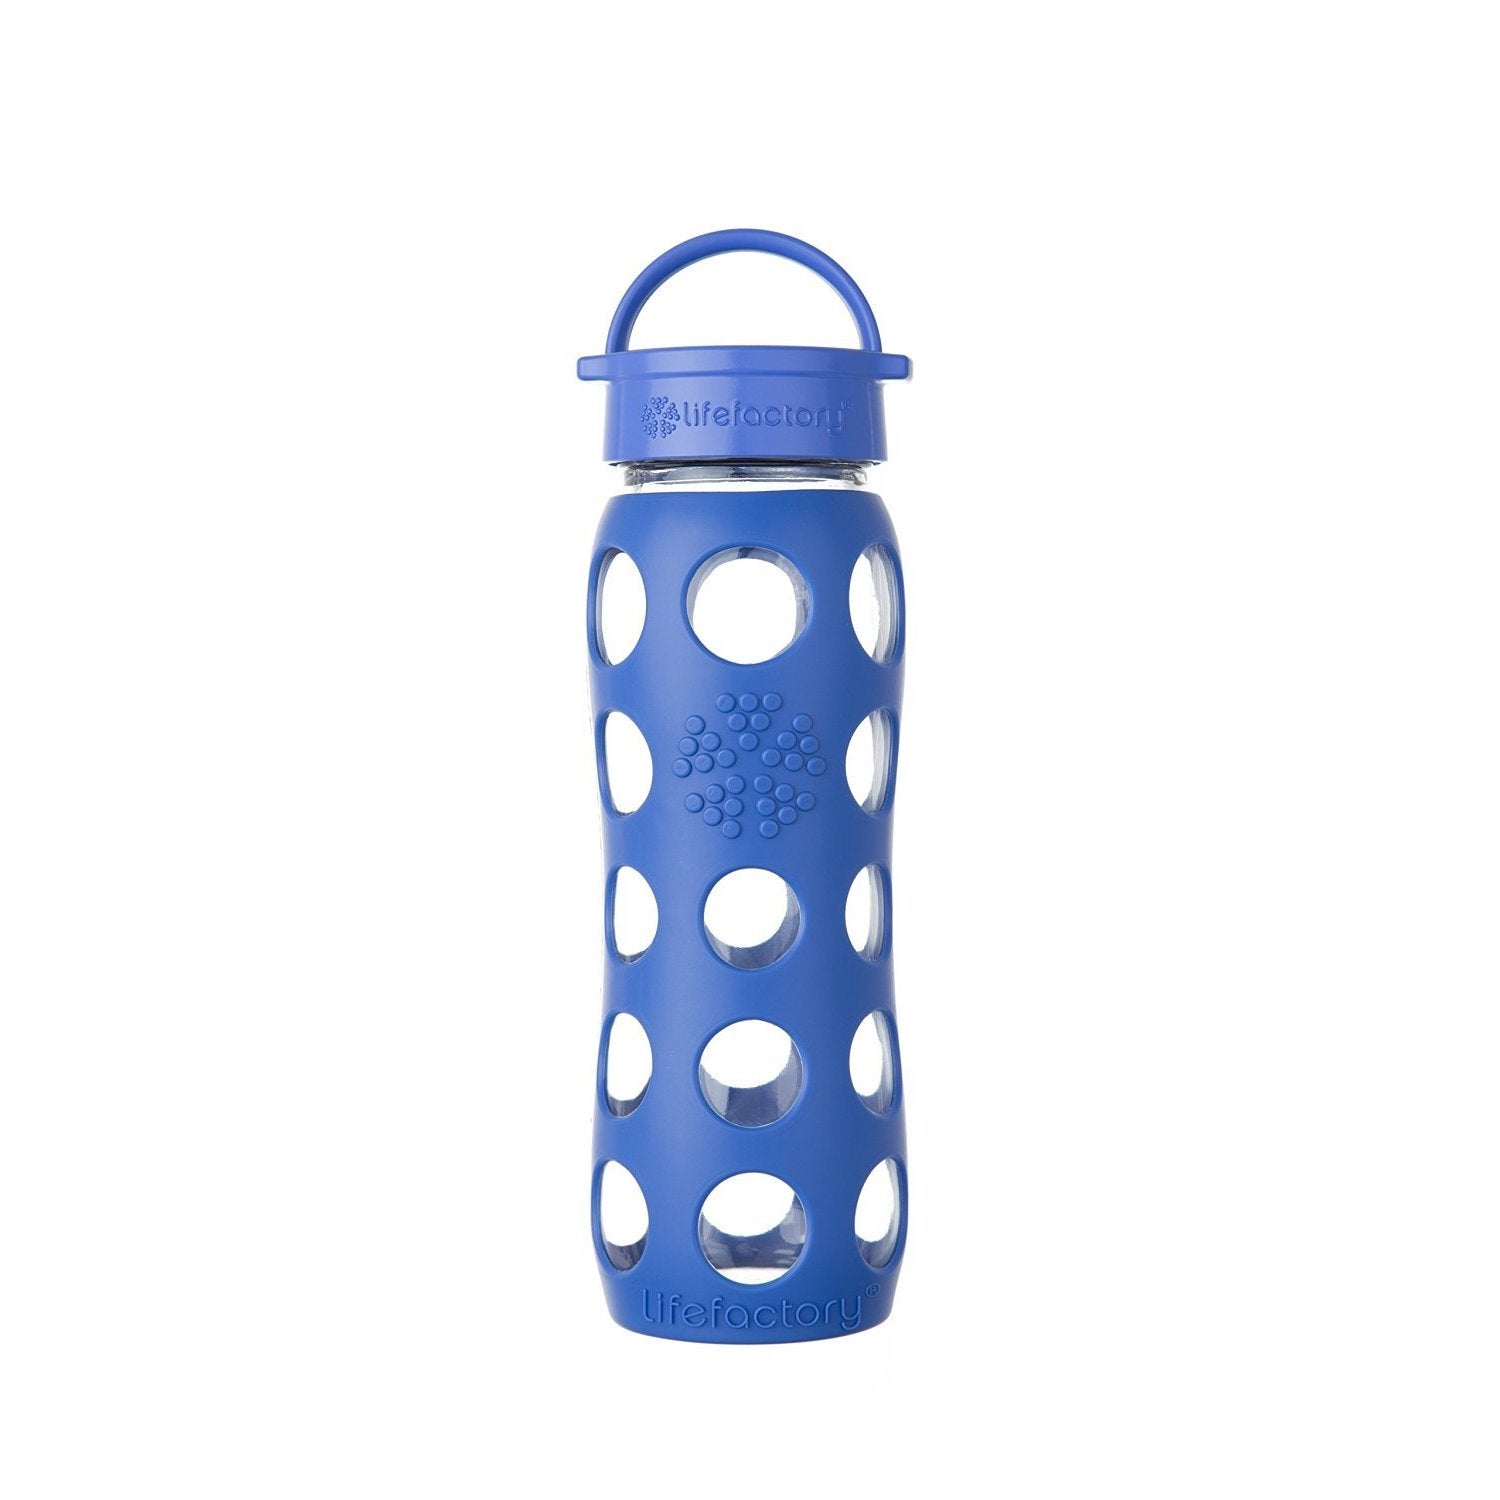 Life Factory Blue Silicone and Glass Water Bottle With Le...